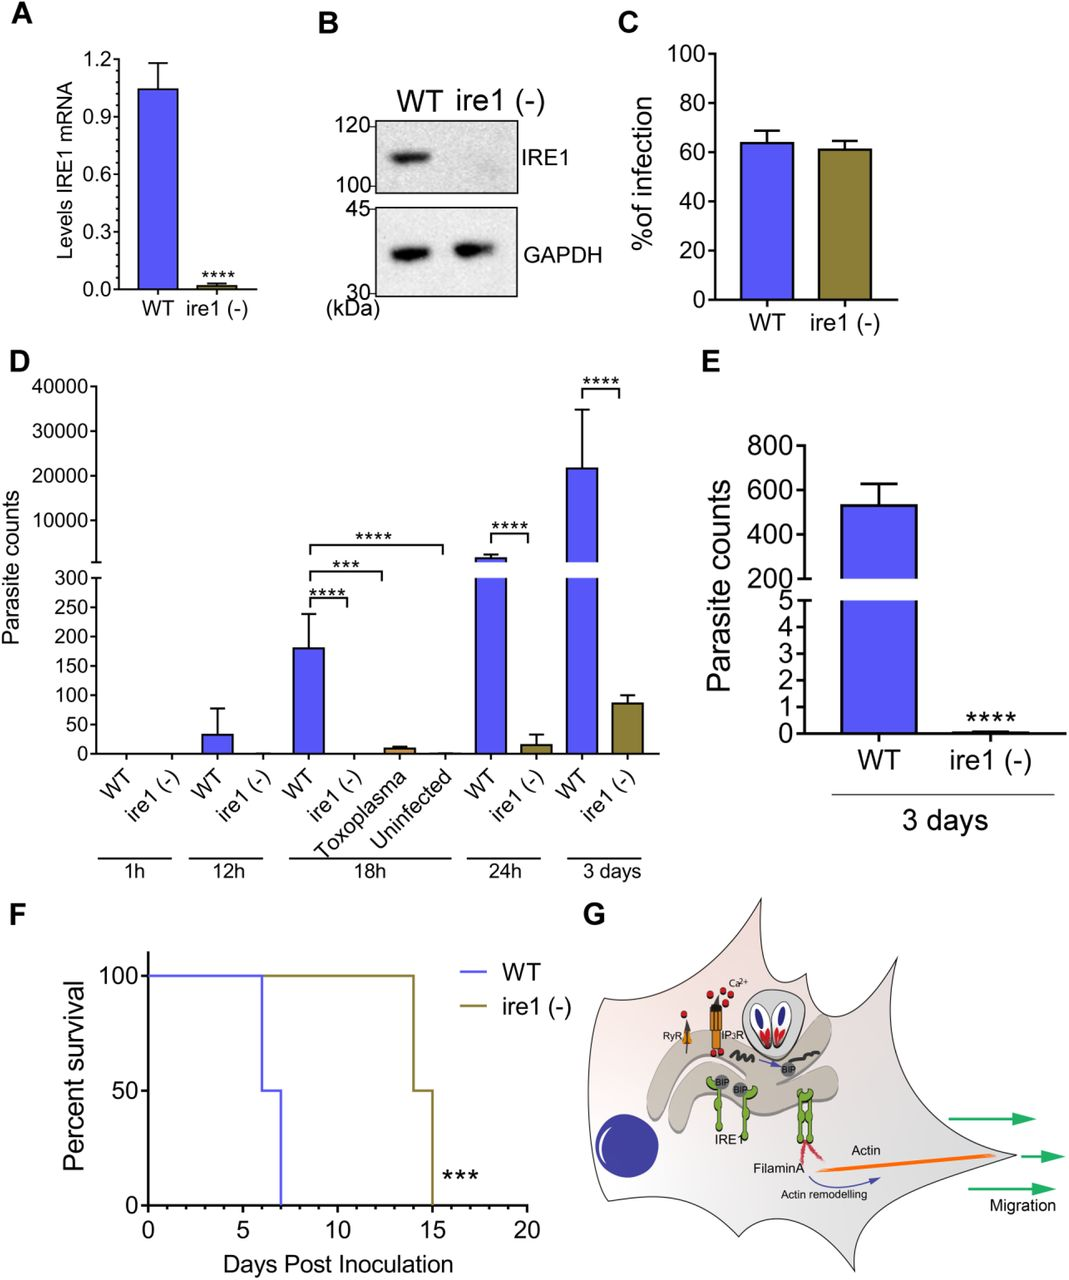 IRE1 facilitates migration of infected DCs in vivo . (A-B) IRE1 was depleted in bone marrow-derived DCs by <t>CRISPR/Cas9</t> and loss of IRE1 expression was assayed by RT- qPCR and immunoblot analyses. (C) WT or ire1 (-) DCs were infected for 18 h and the percentage of infection was determined by counting the number of parasites in 100 cells. (D) Infected WT and ire1 (-) cells were inoculated into mice by i.p. injection (10 6 infected cells). At the indicated hpi, the spleen of each mouse was harvested, and the number of parasites was determined by PCR. ***p